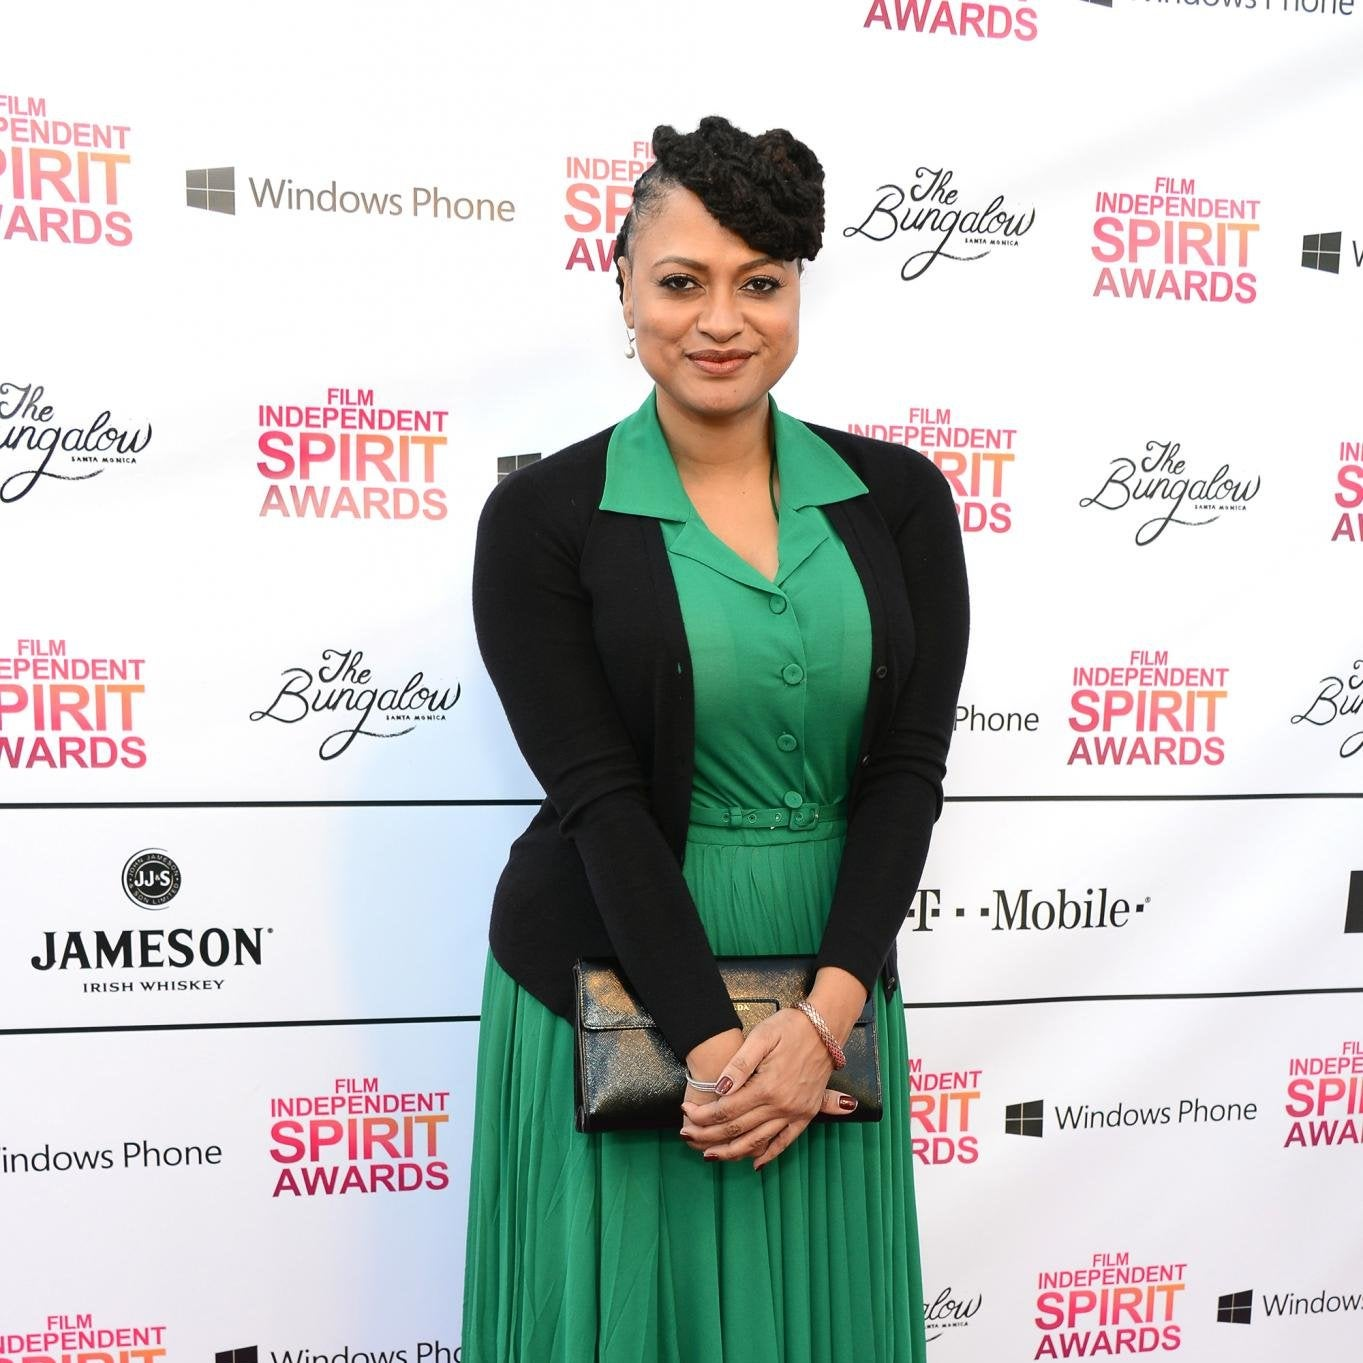 Ava DuVernay Wins Independent Spirit Award for 'Middle of Nowhere'